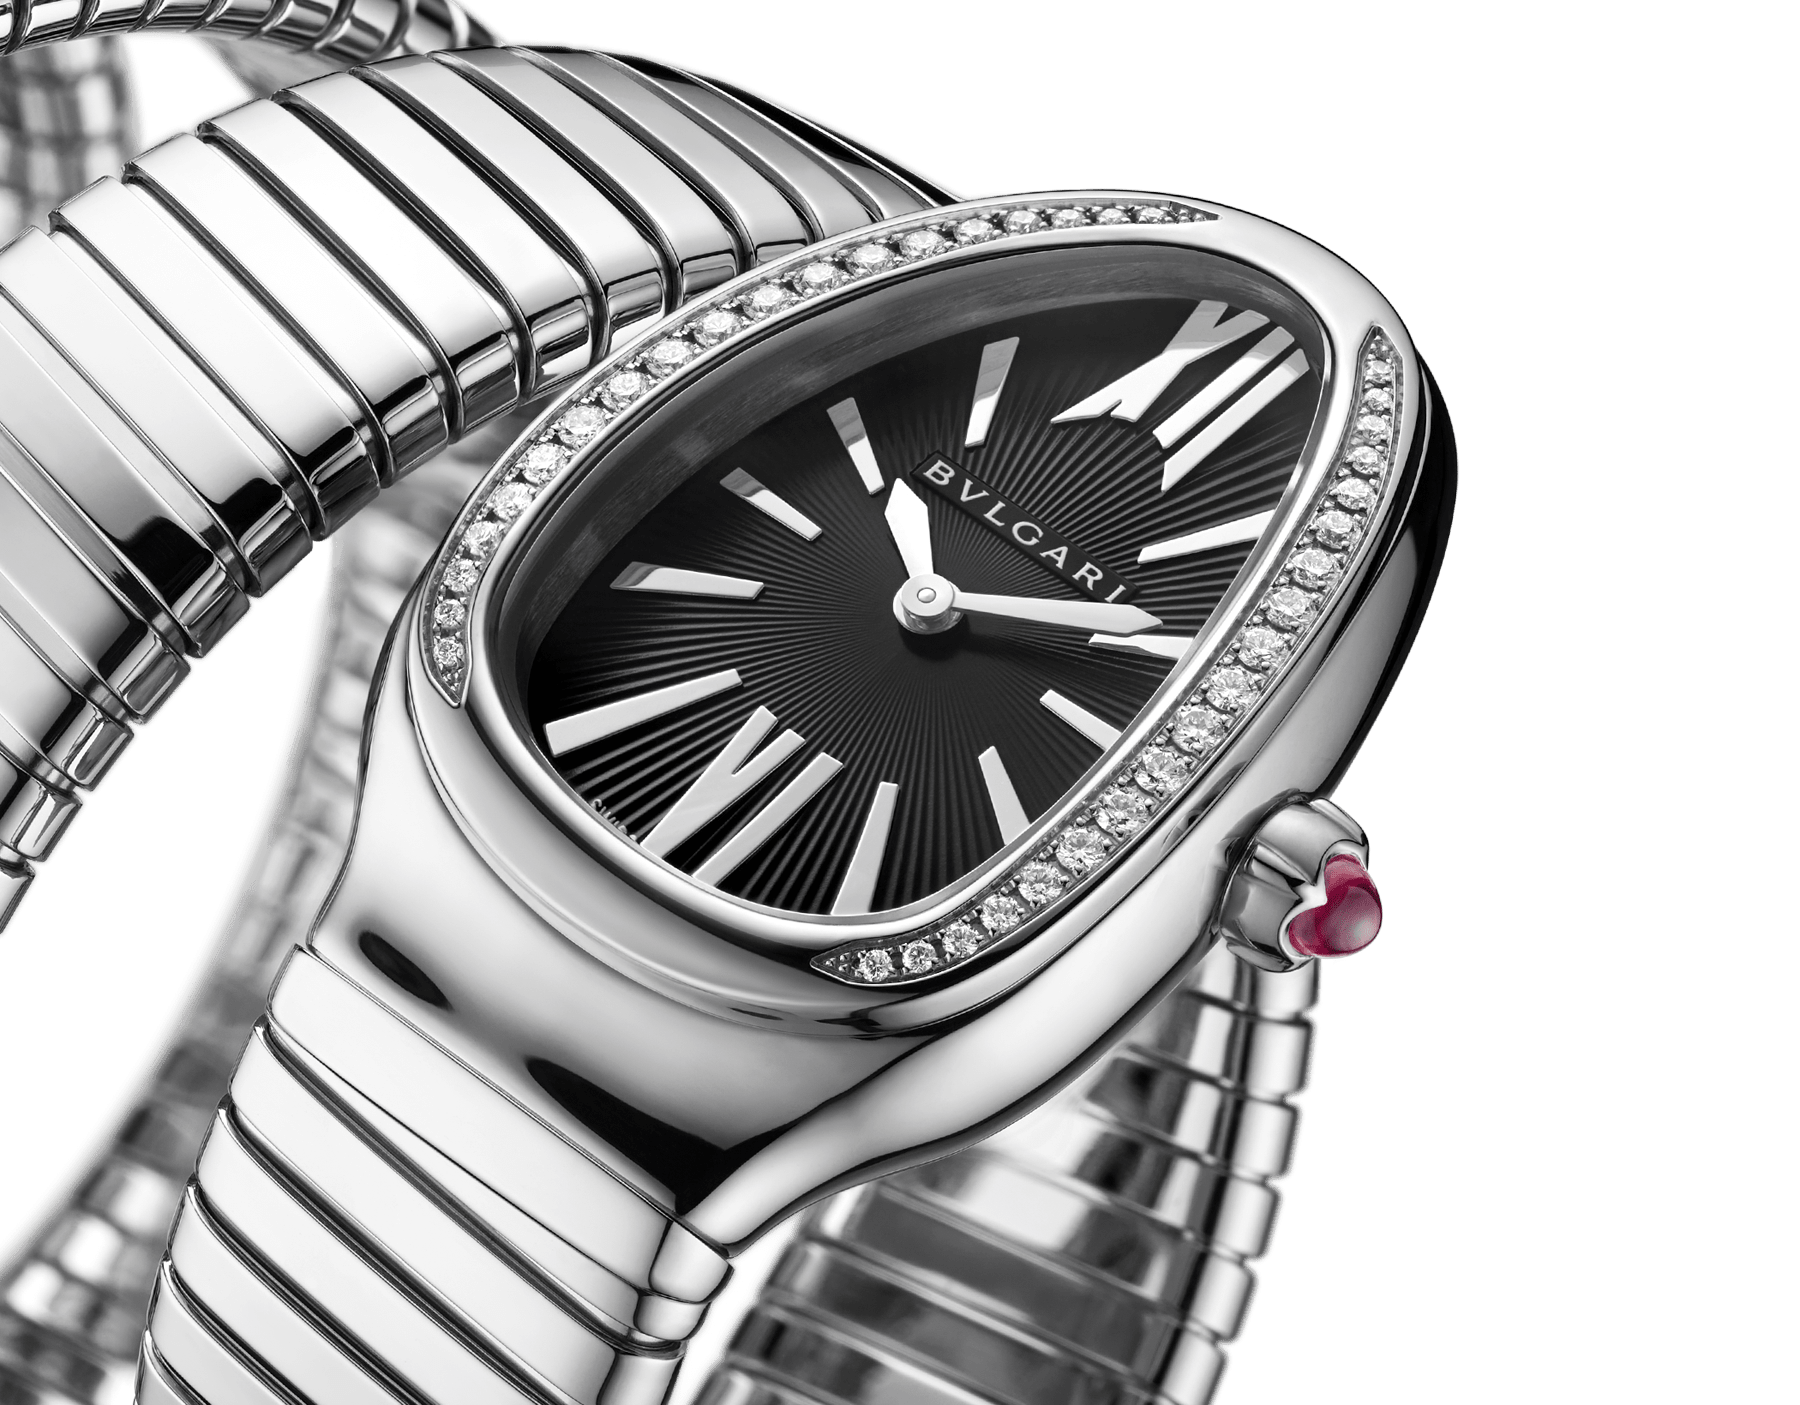 Serpenti Tubogas five-spiral watch with stainless steel case set with brilliant cut diamonds, black opaline dial and stainless steel bracelet. 102736 image 2